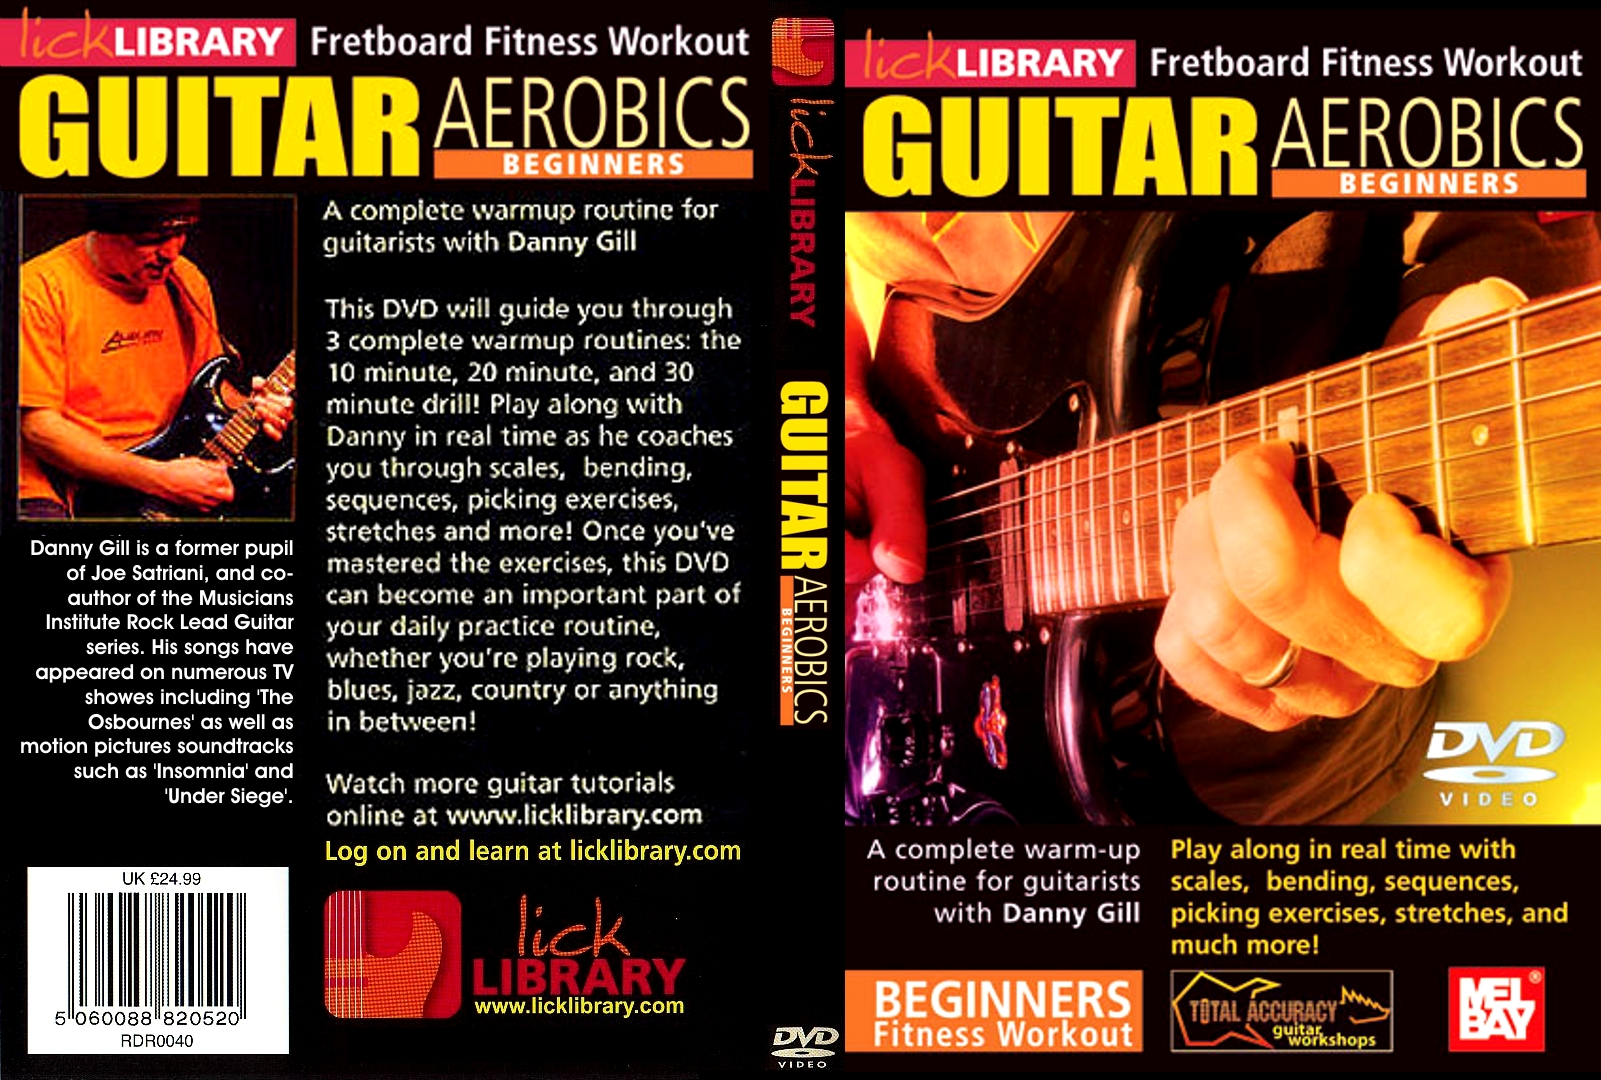 Are not lick library guitar aerobics